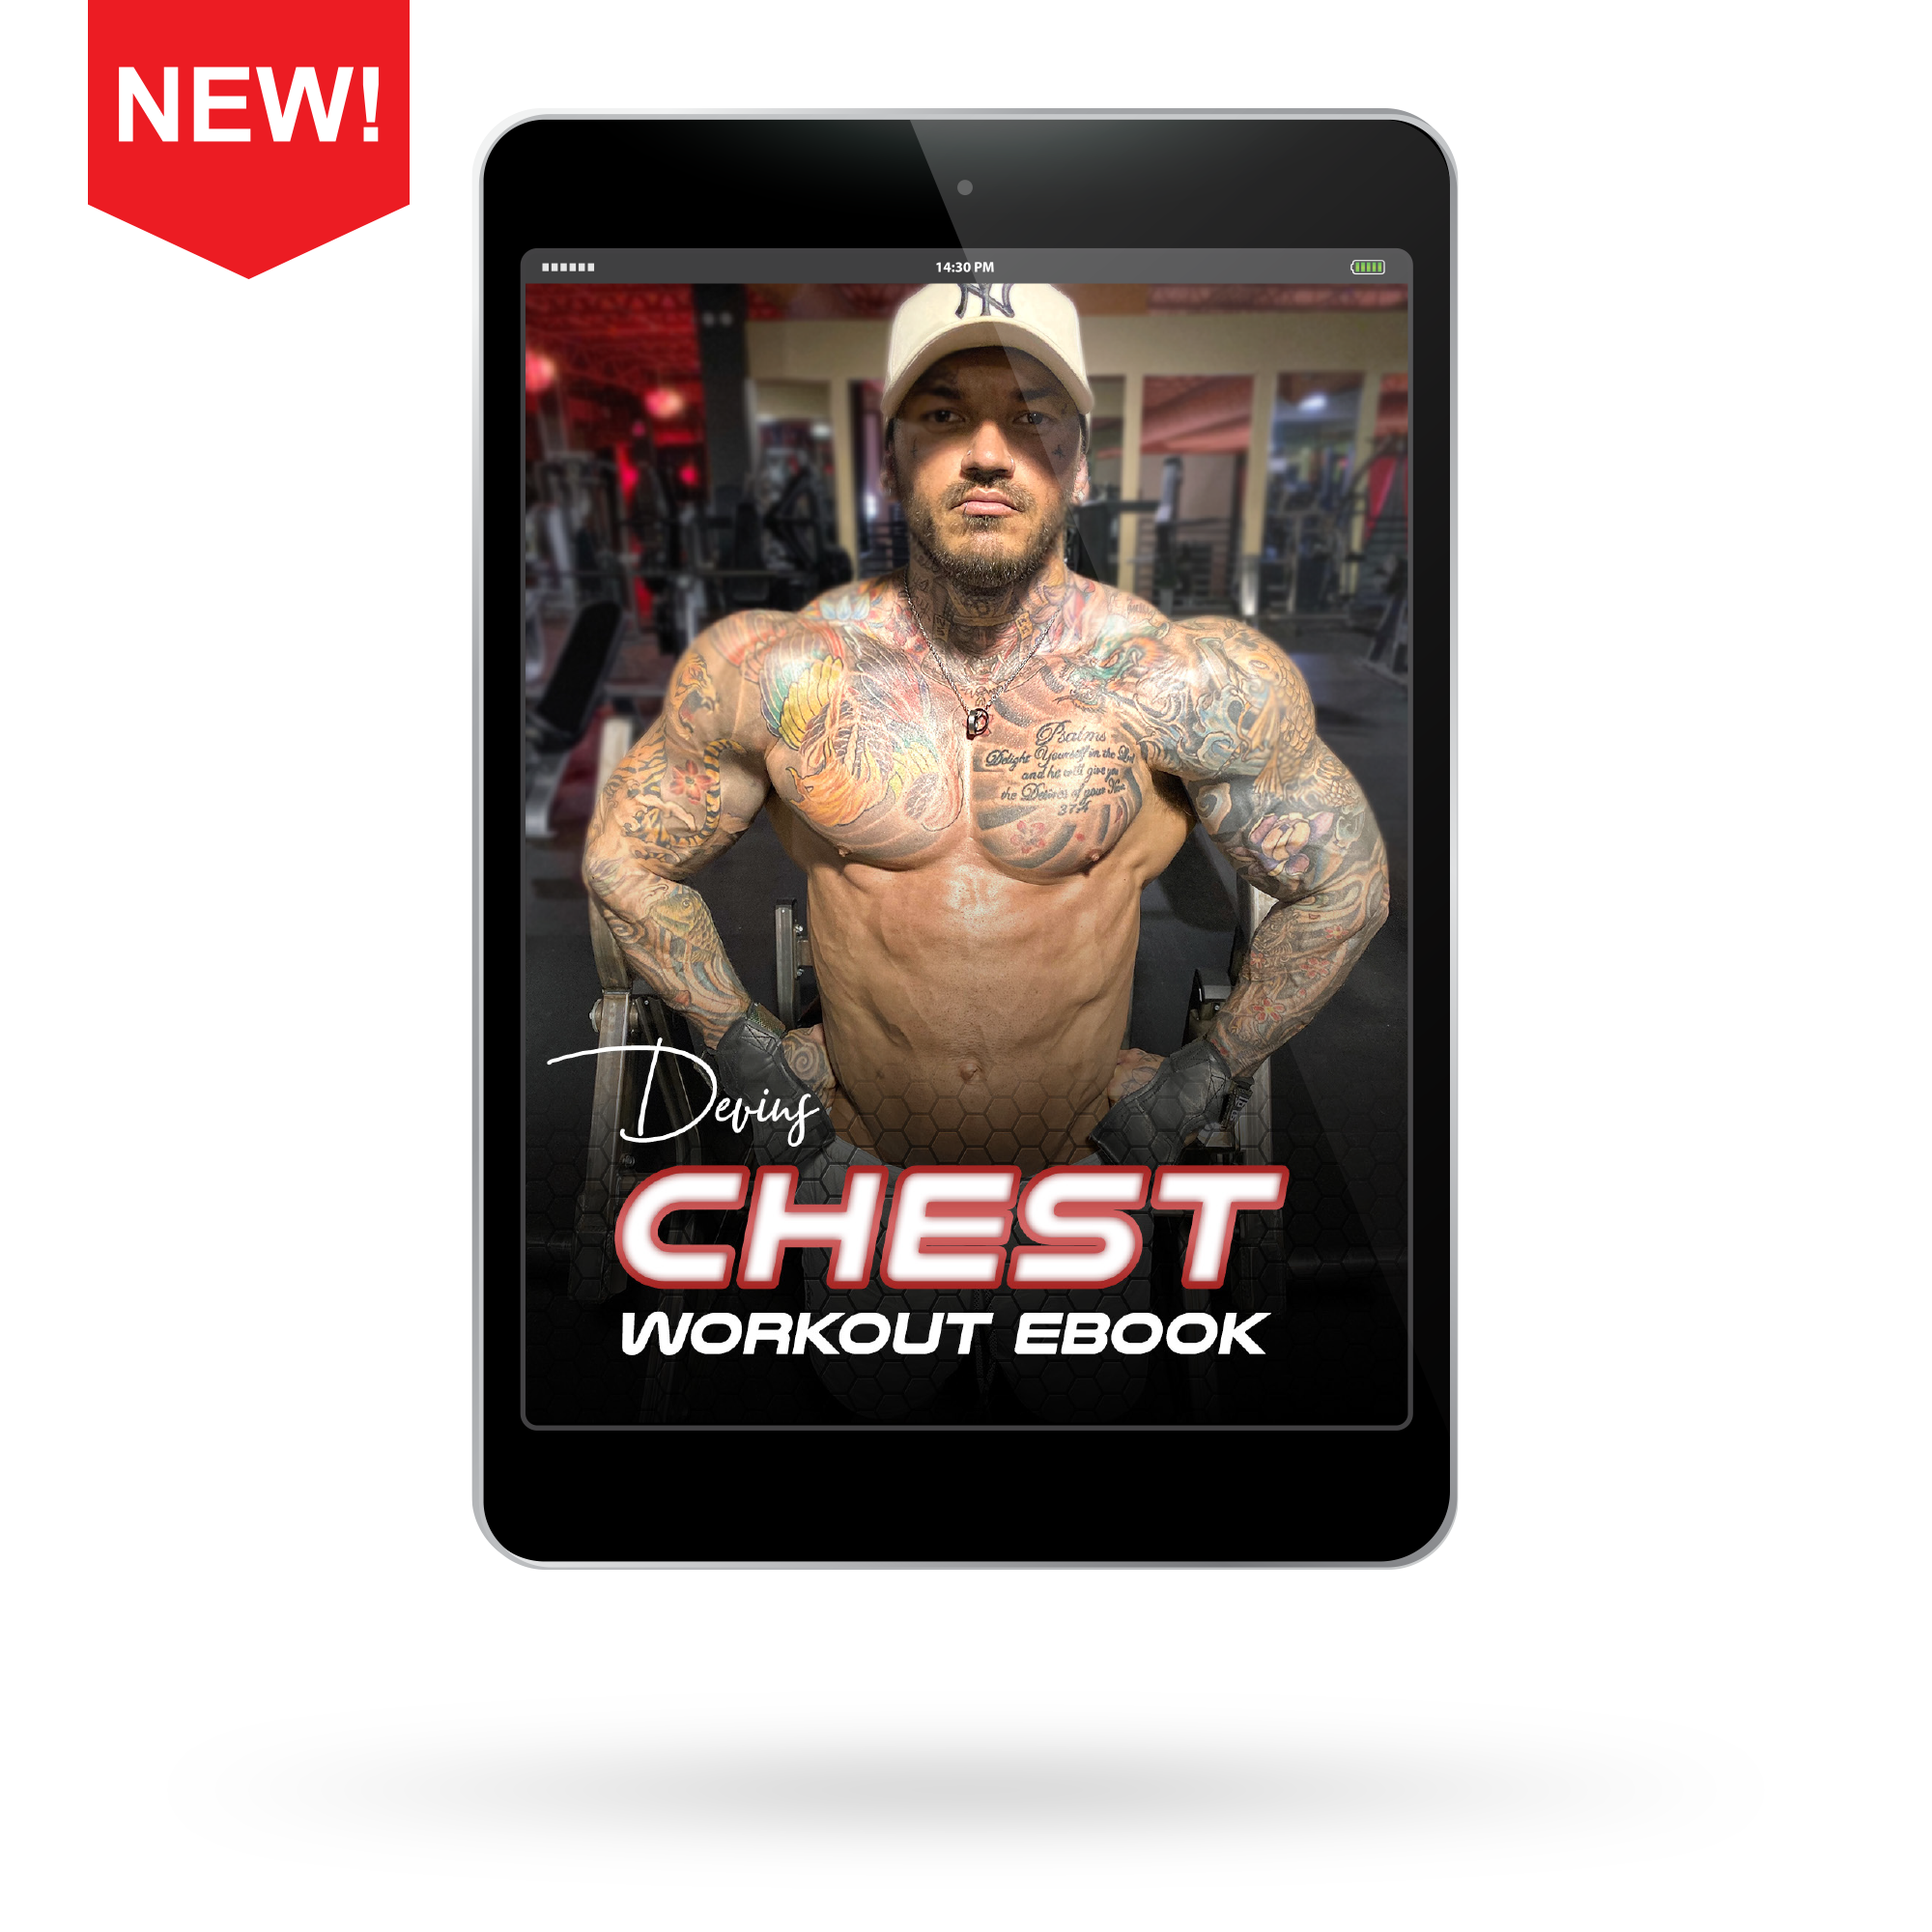 Chest Workout eBook